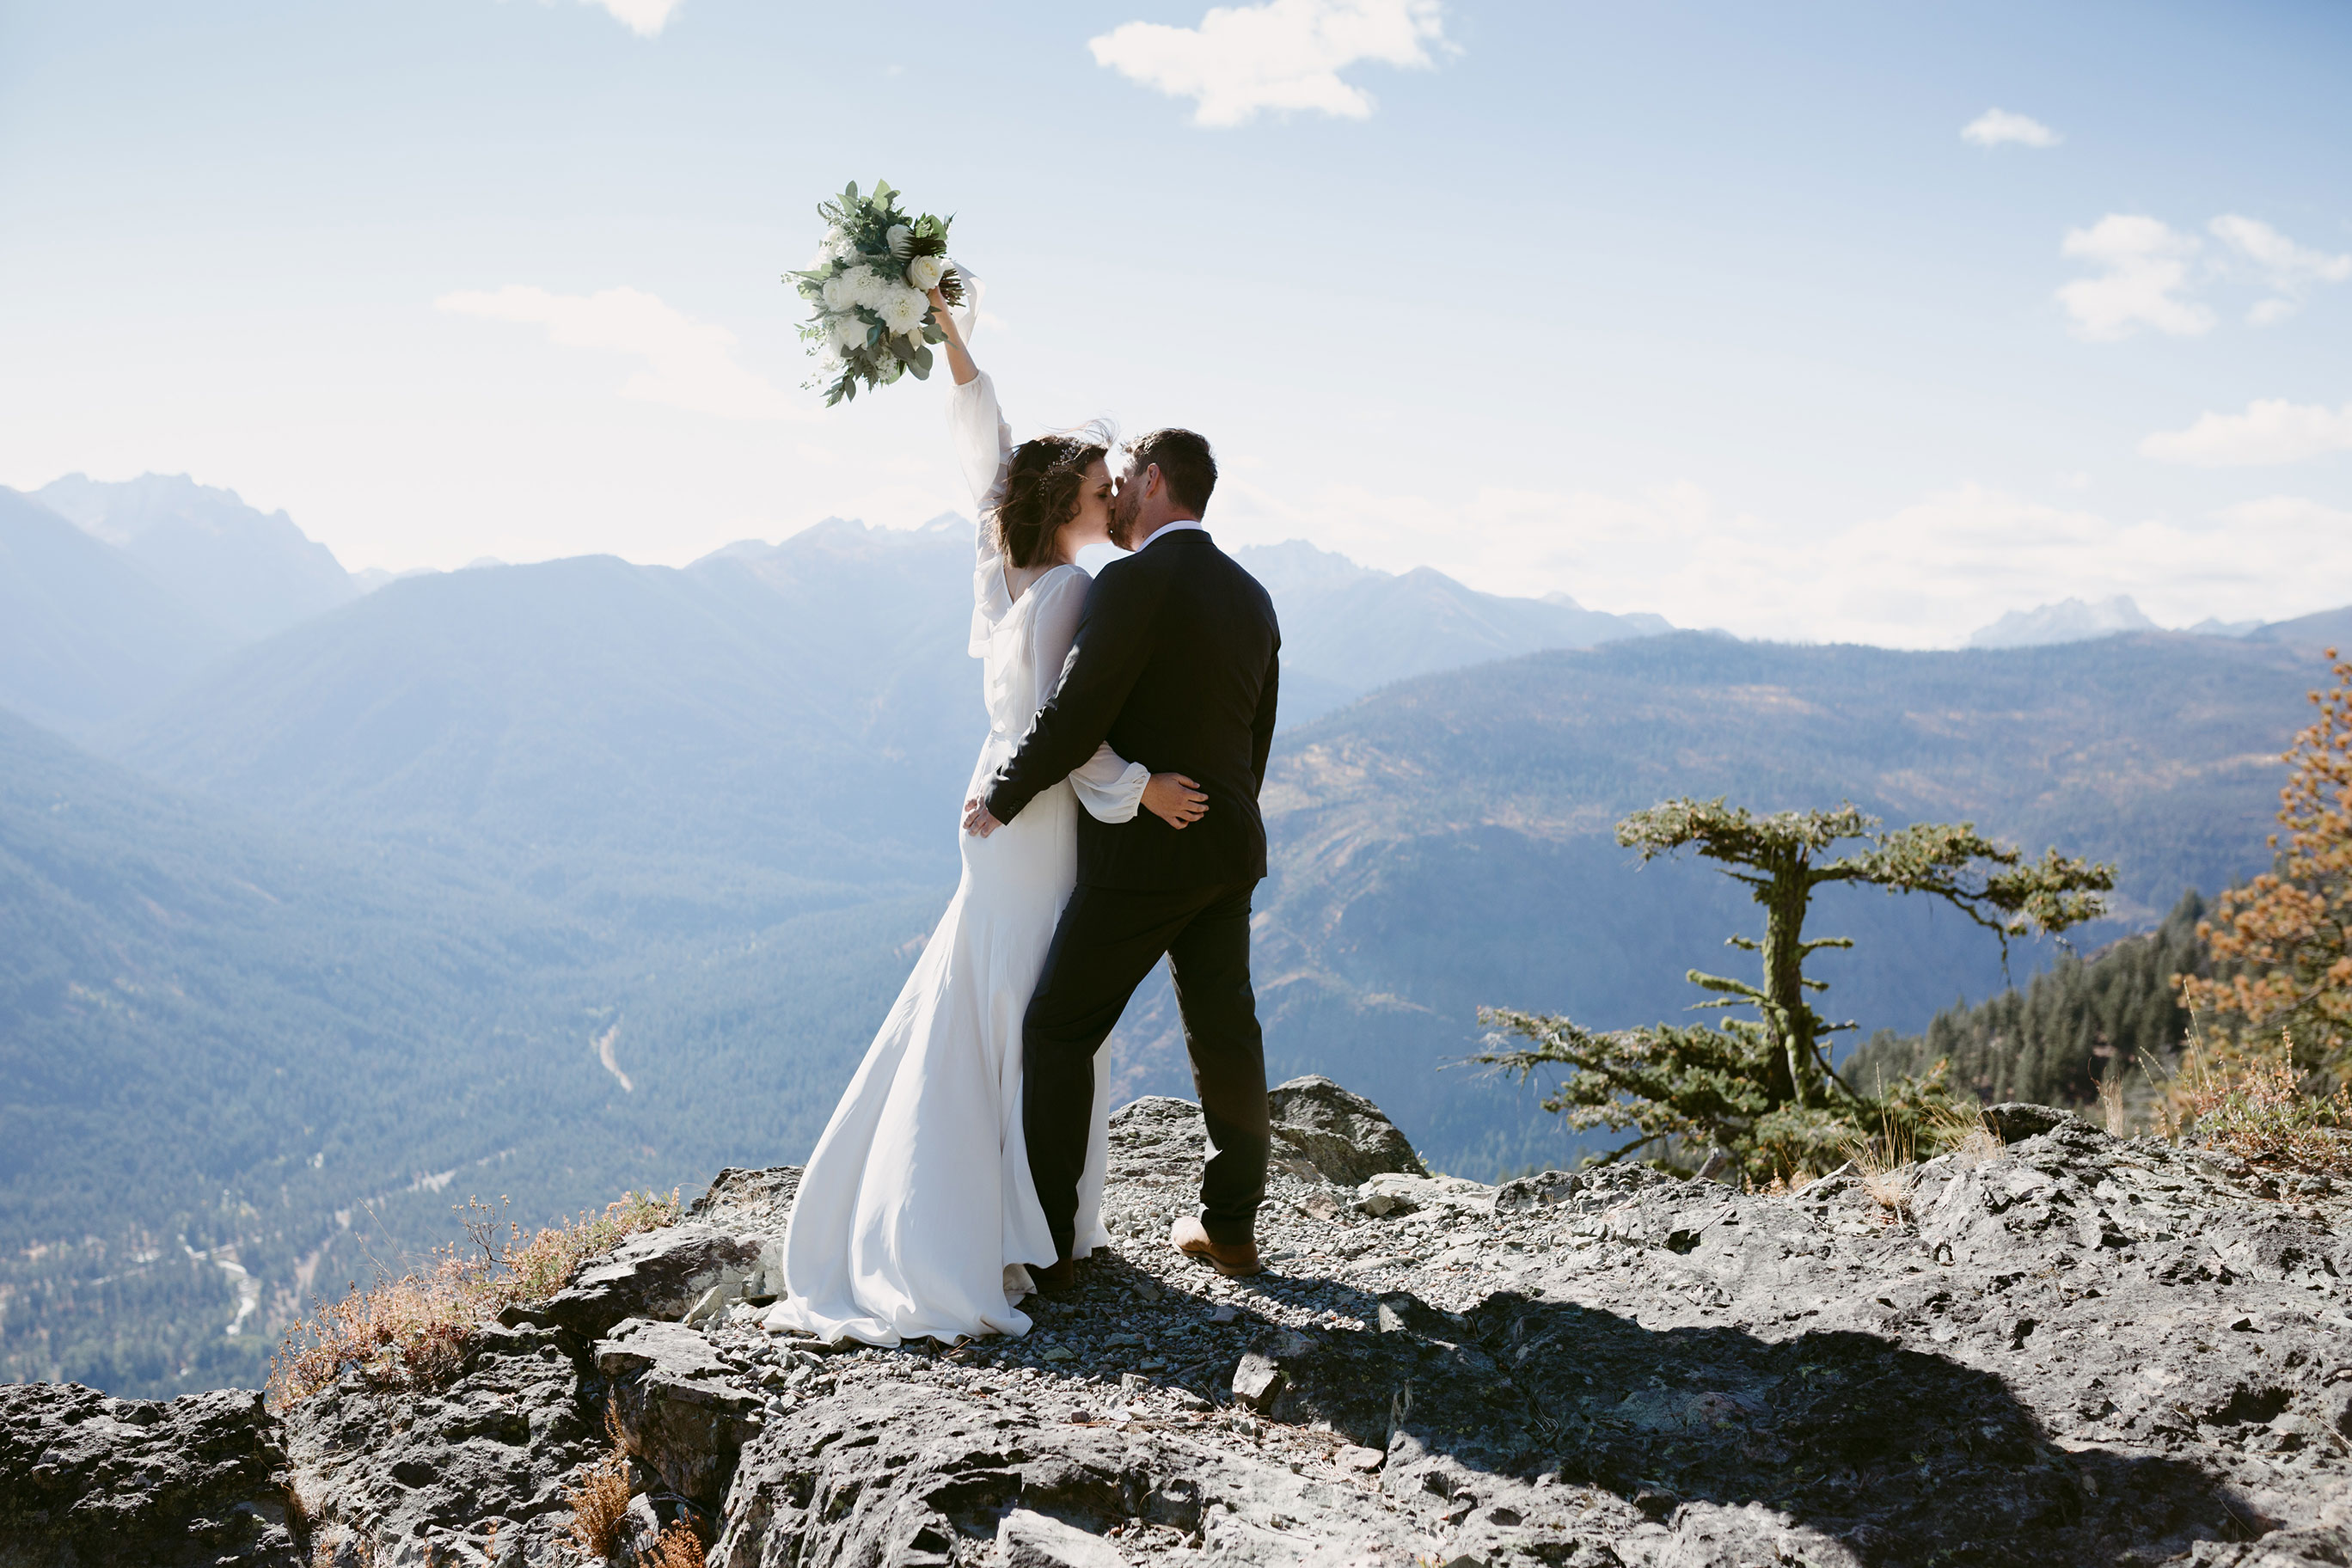 Bride and Groom Portrait on Mountain Cliff Winthrop Wa